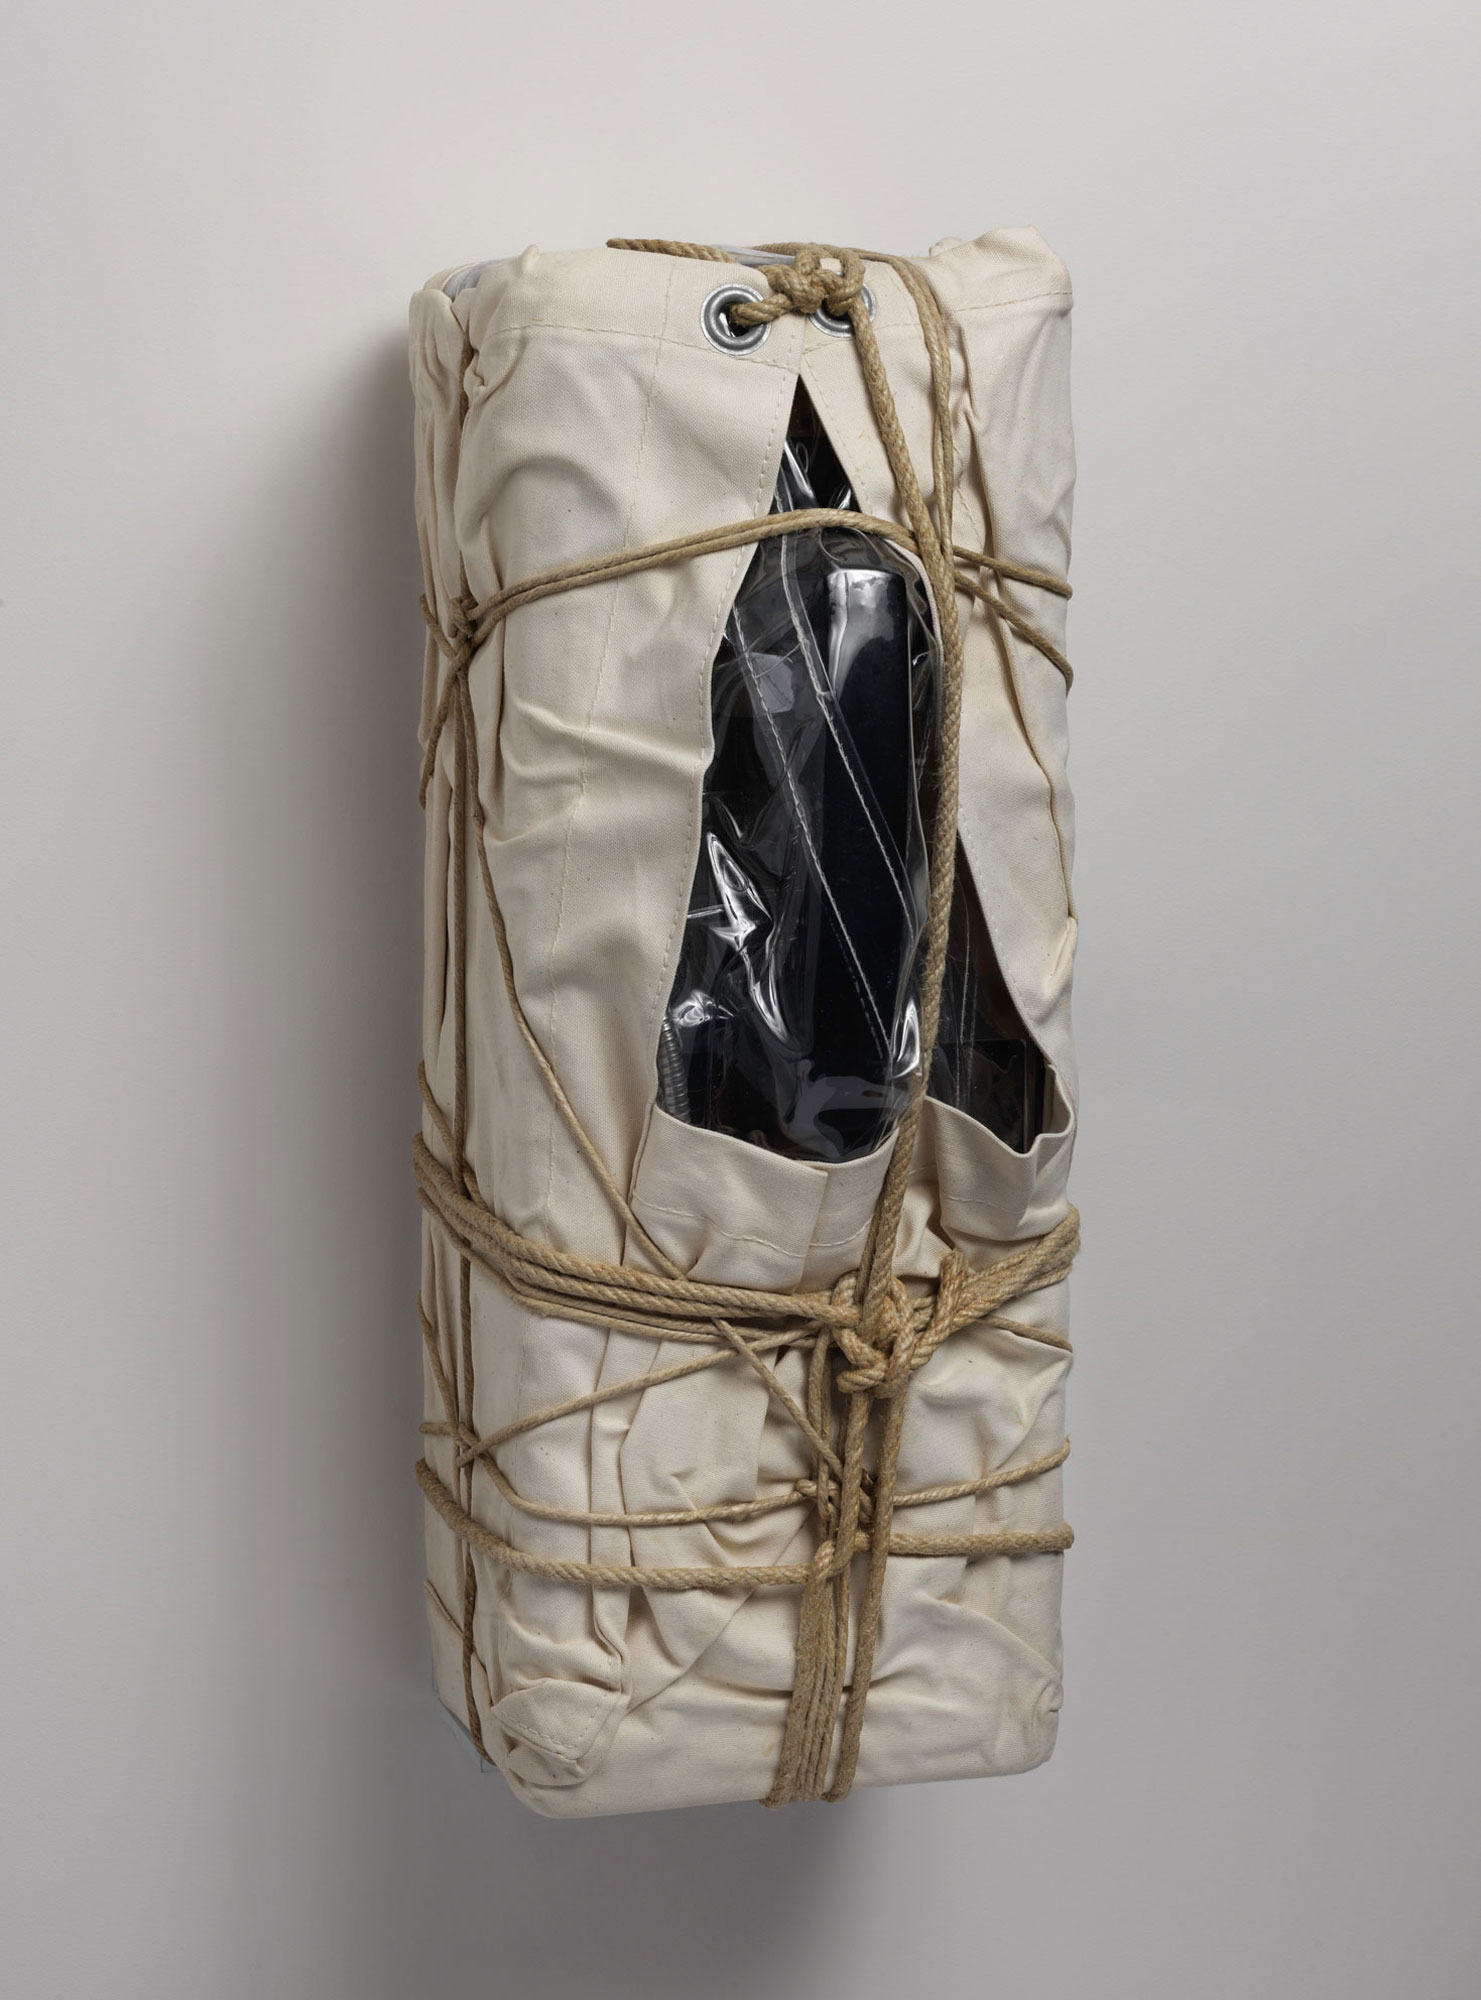 Side view of a payphone wrapped in sackcloth with rope and twine.